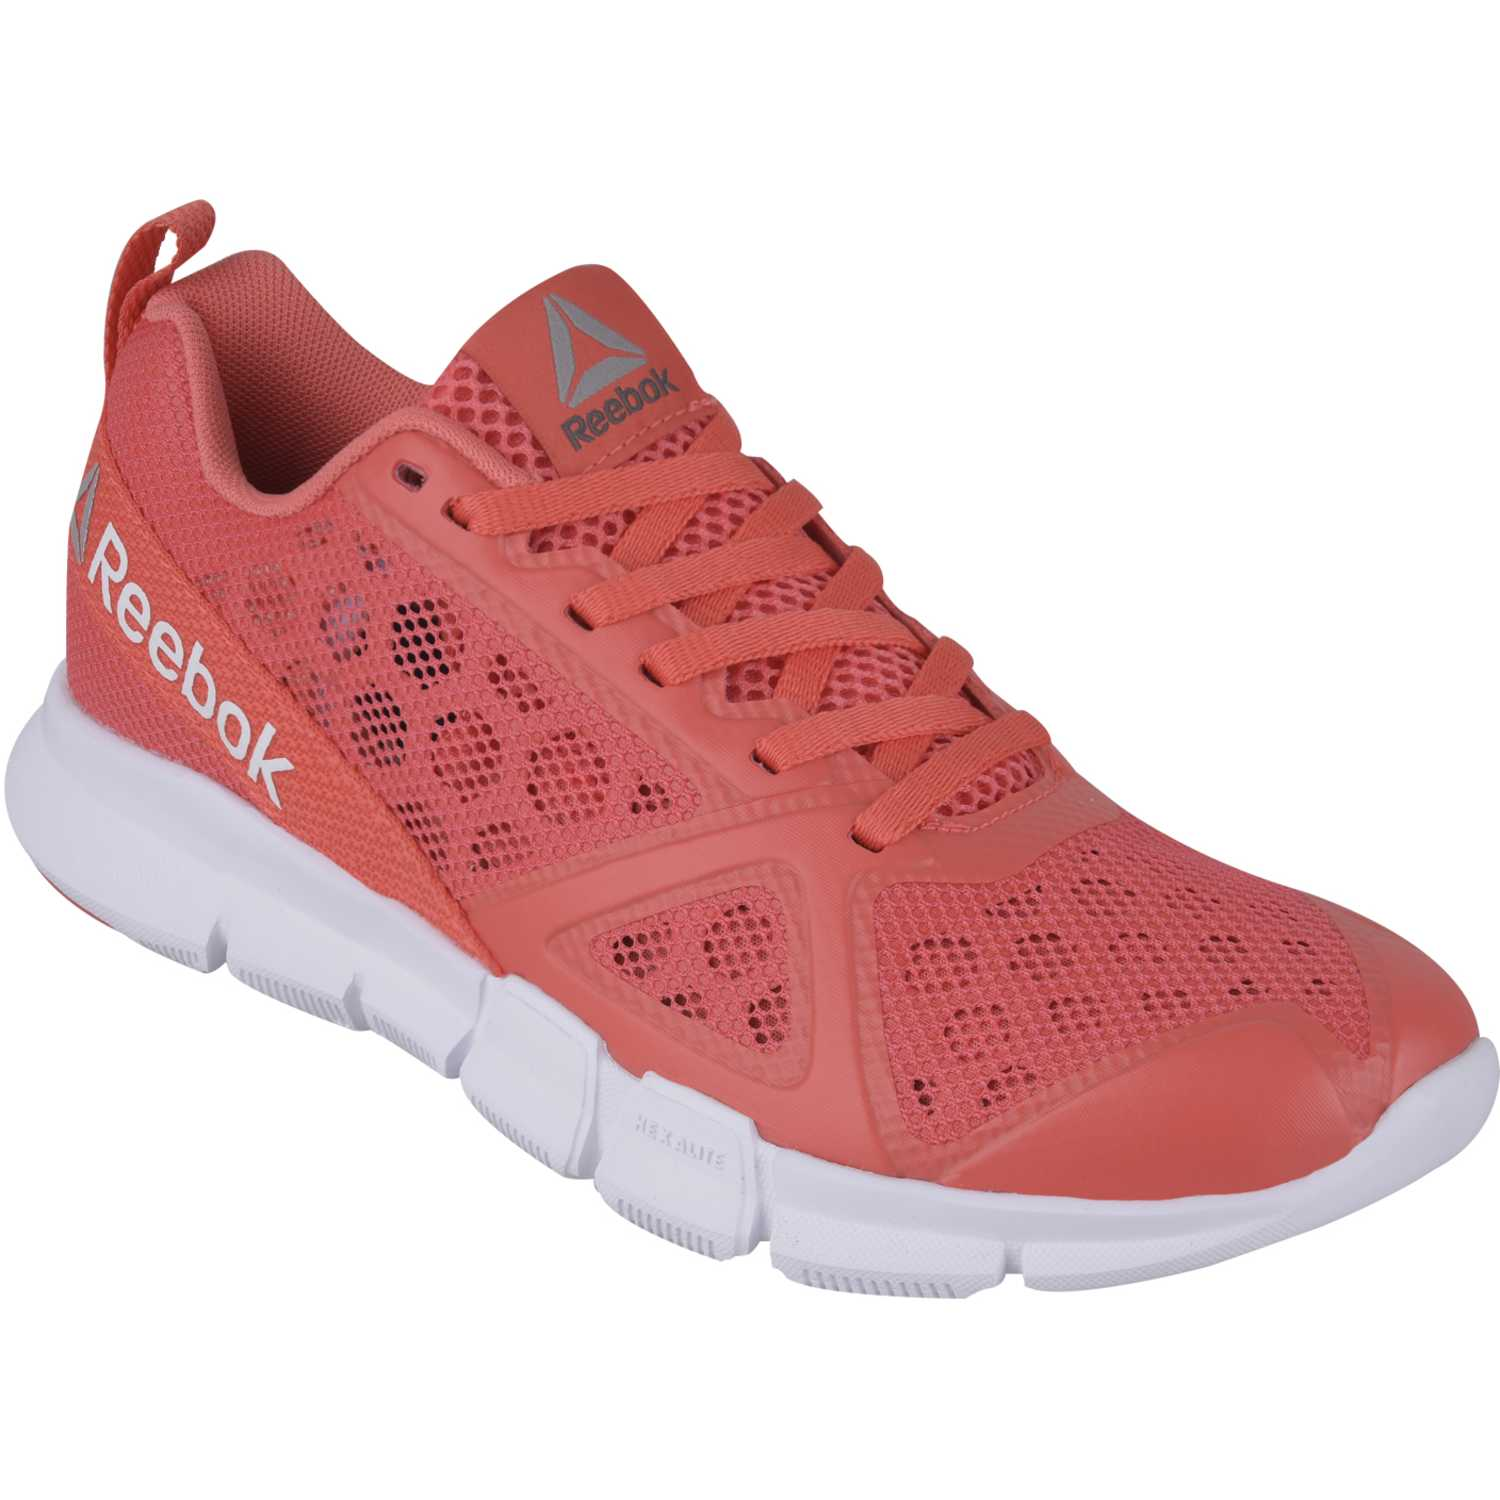 Reebok hexalite tr Coral blanco Mujeres |